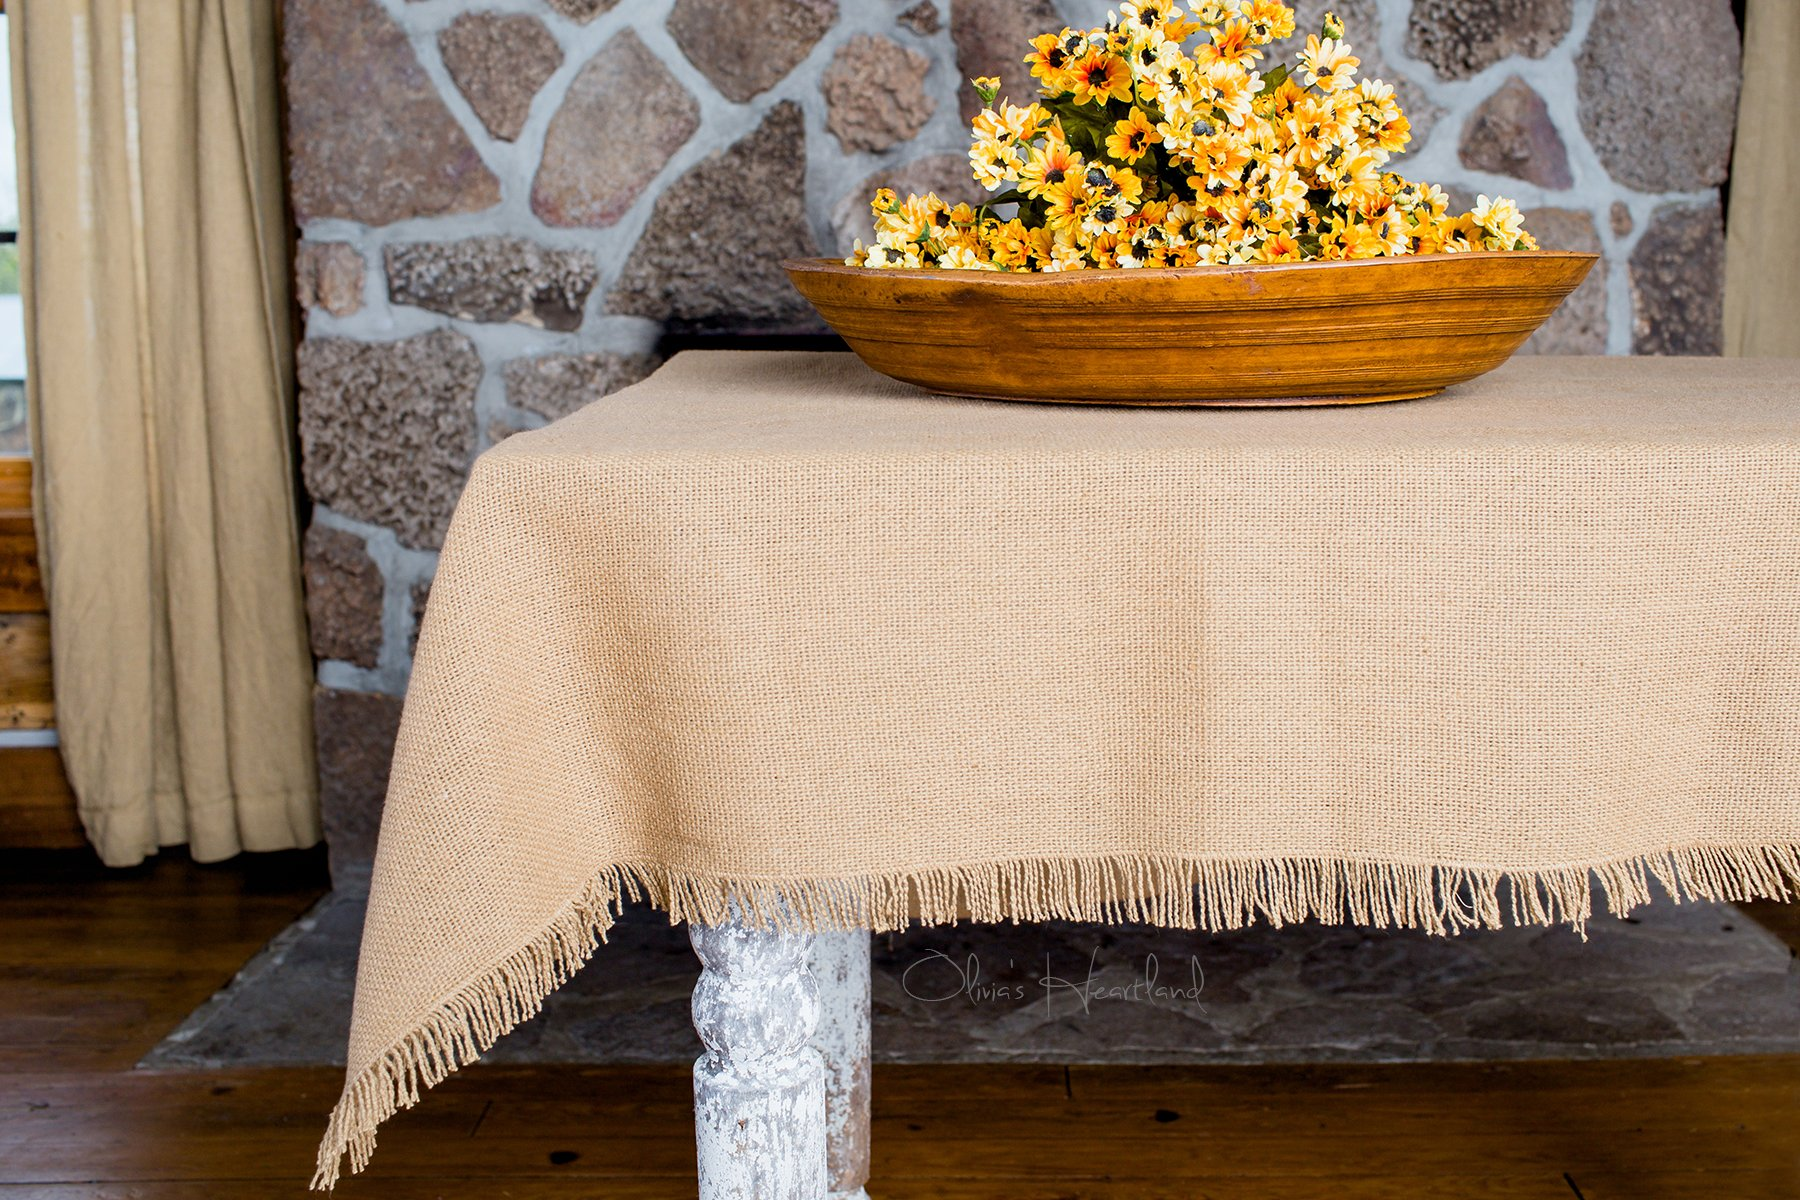 Deluxe Burlap Natural Tan Table Cloth - 60x80'' Tablecloth by Olivia's Heartland